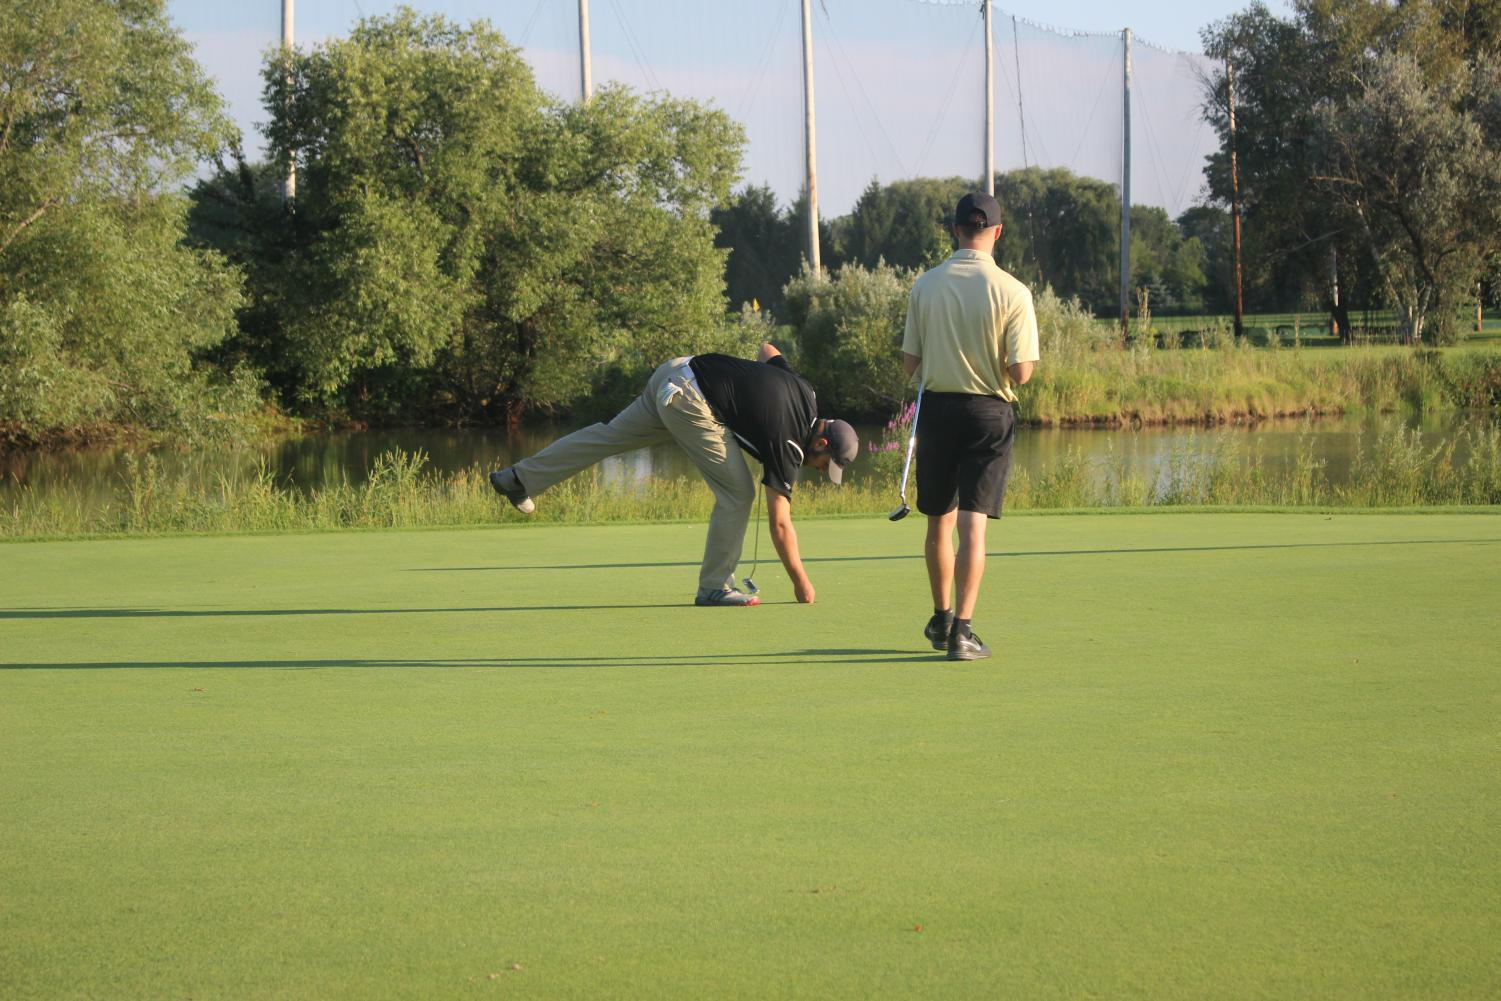 Tony Sertic makes a putt to win the match.